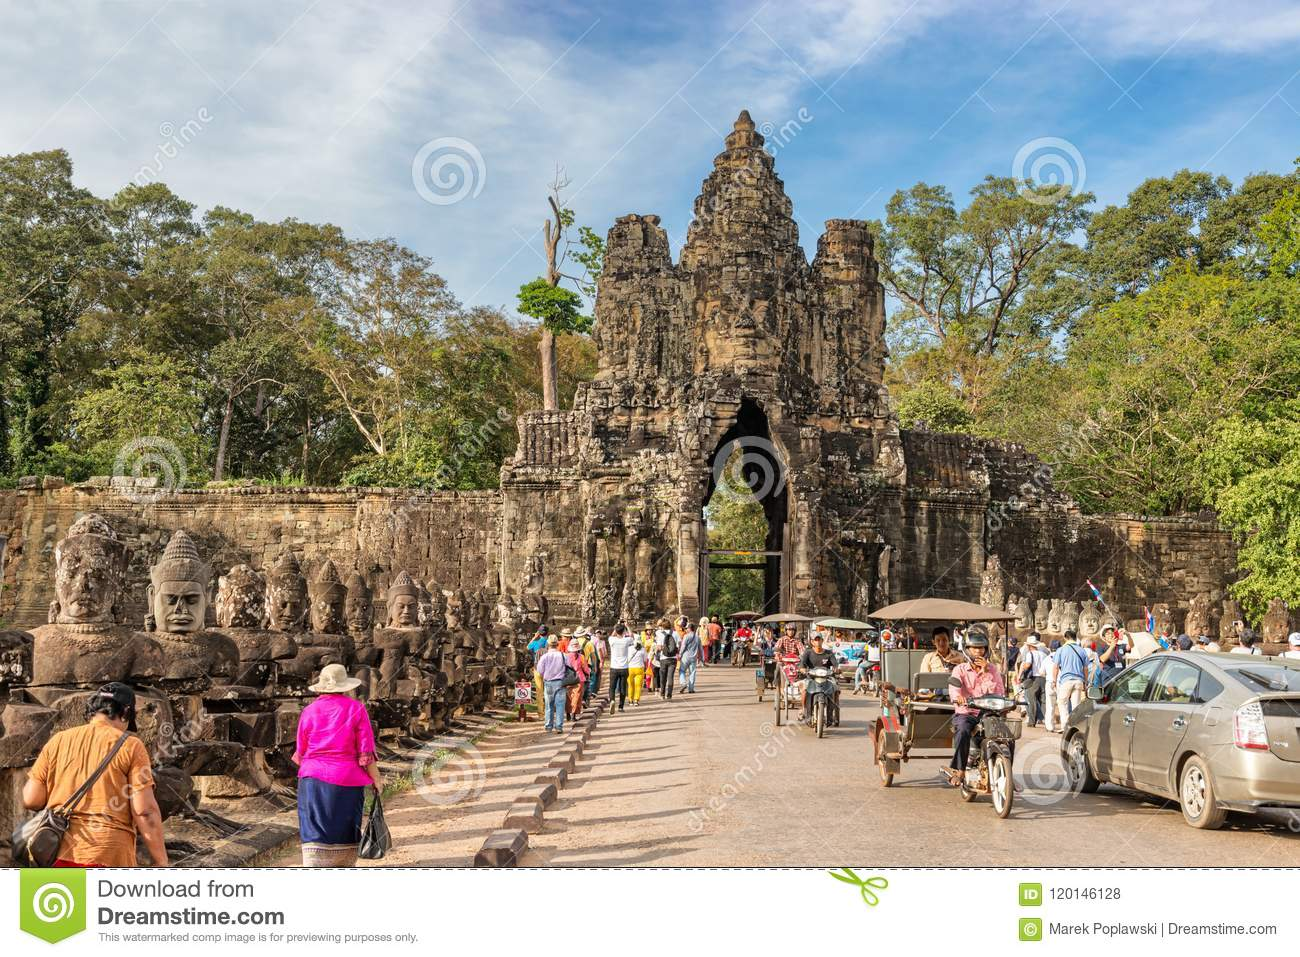 City Of South Gate >> Statues At South Gate To Angkor Thom Angkor Unesco World